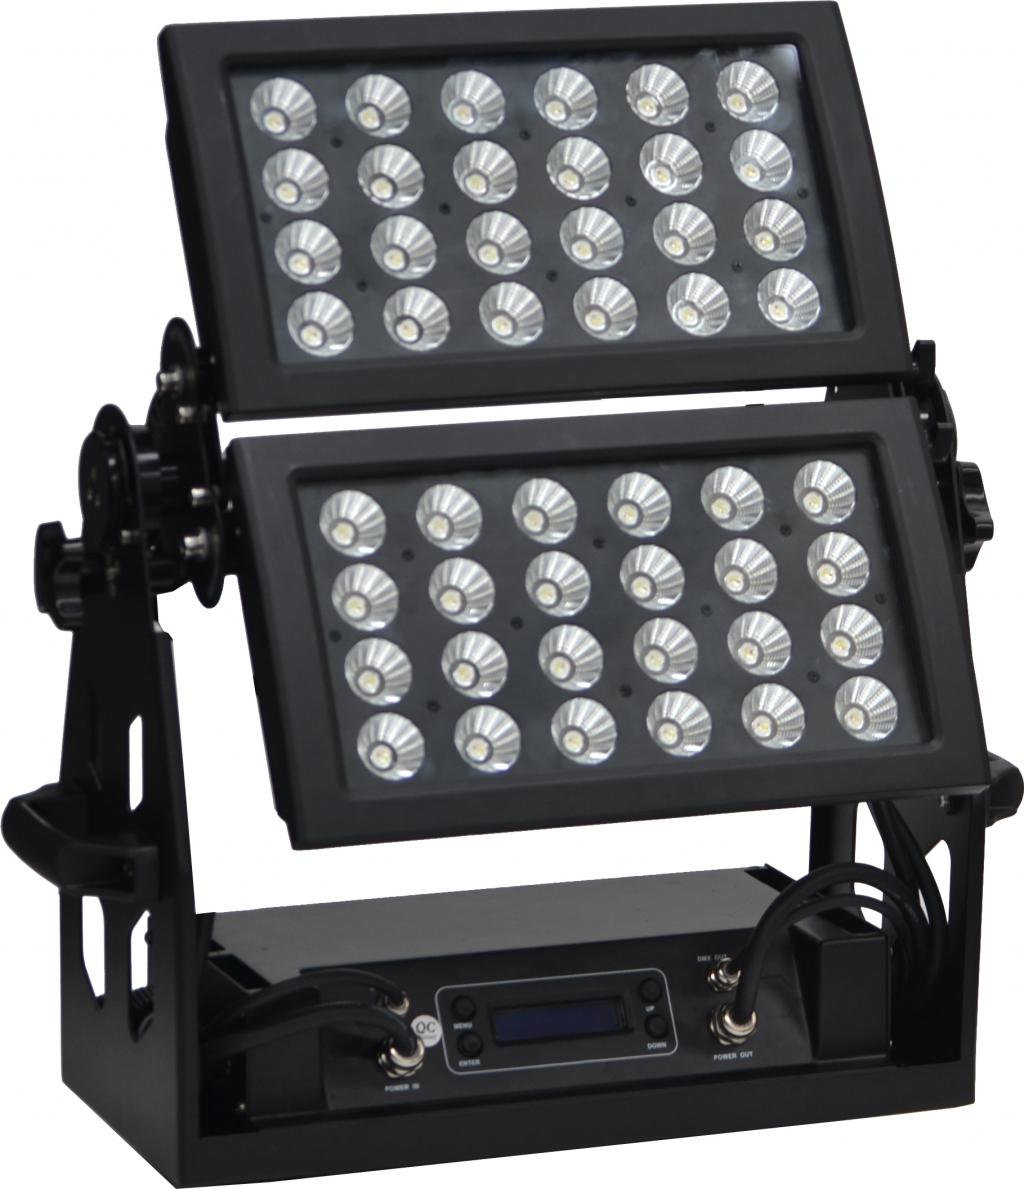 PROYECTOR LED 48LED x 8W 4in1 RGBW - TS115